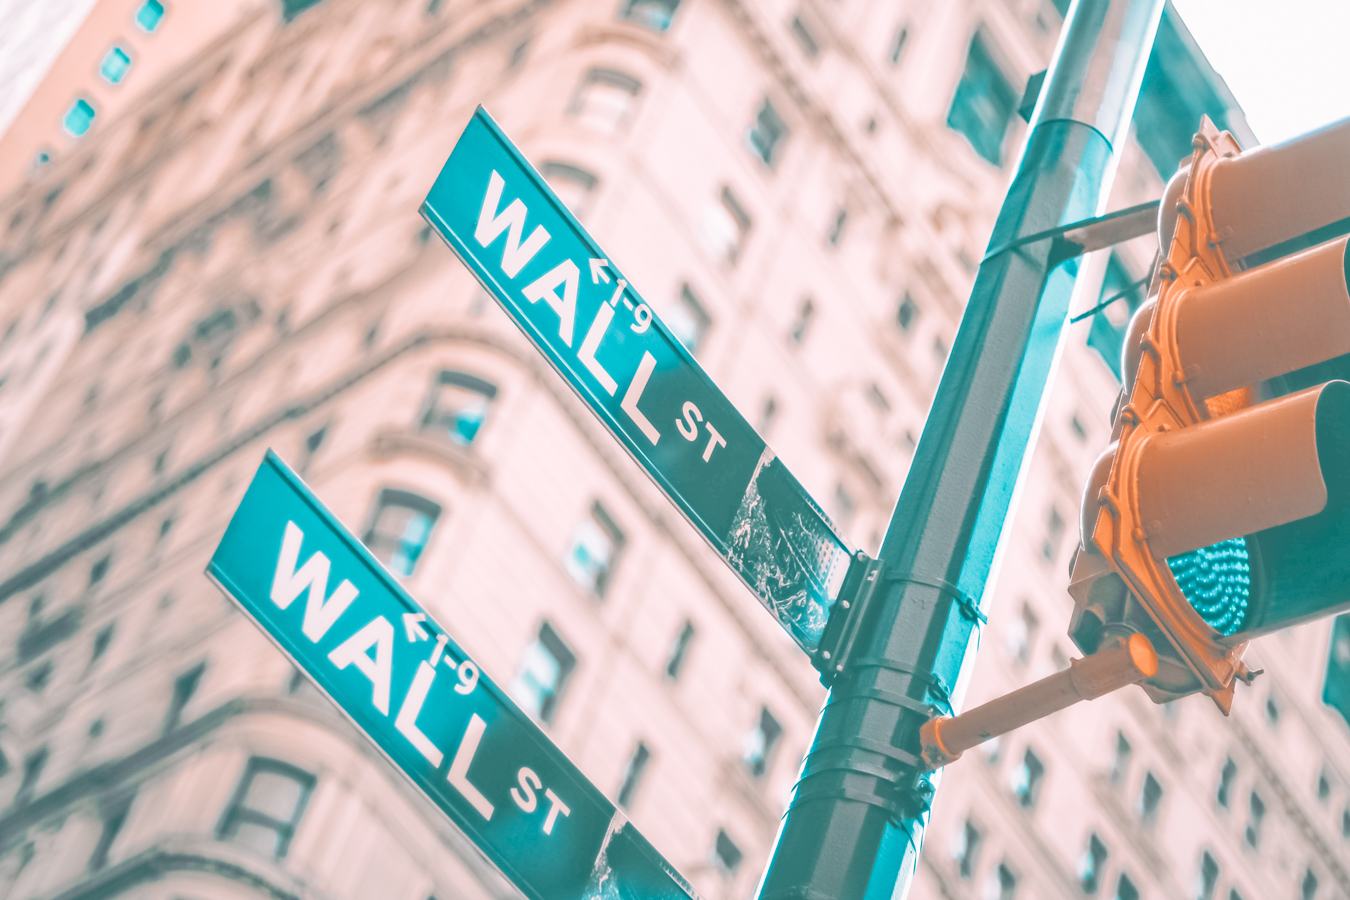 Sign of Wall Street